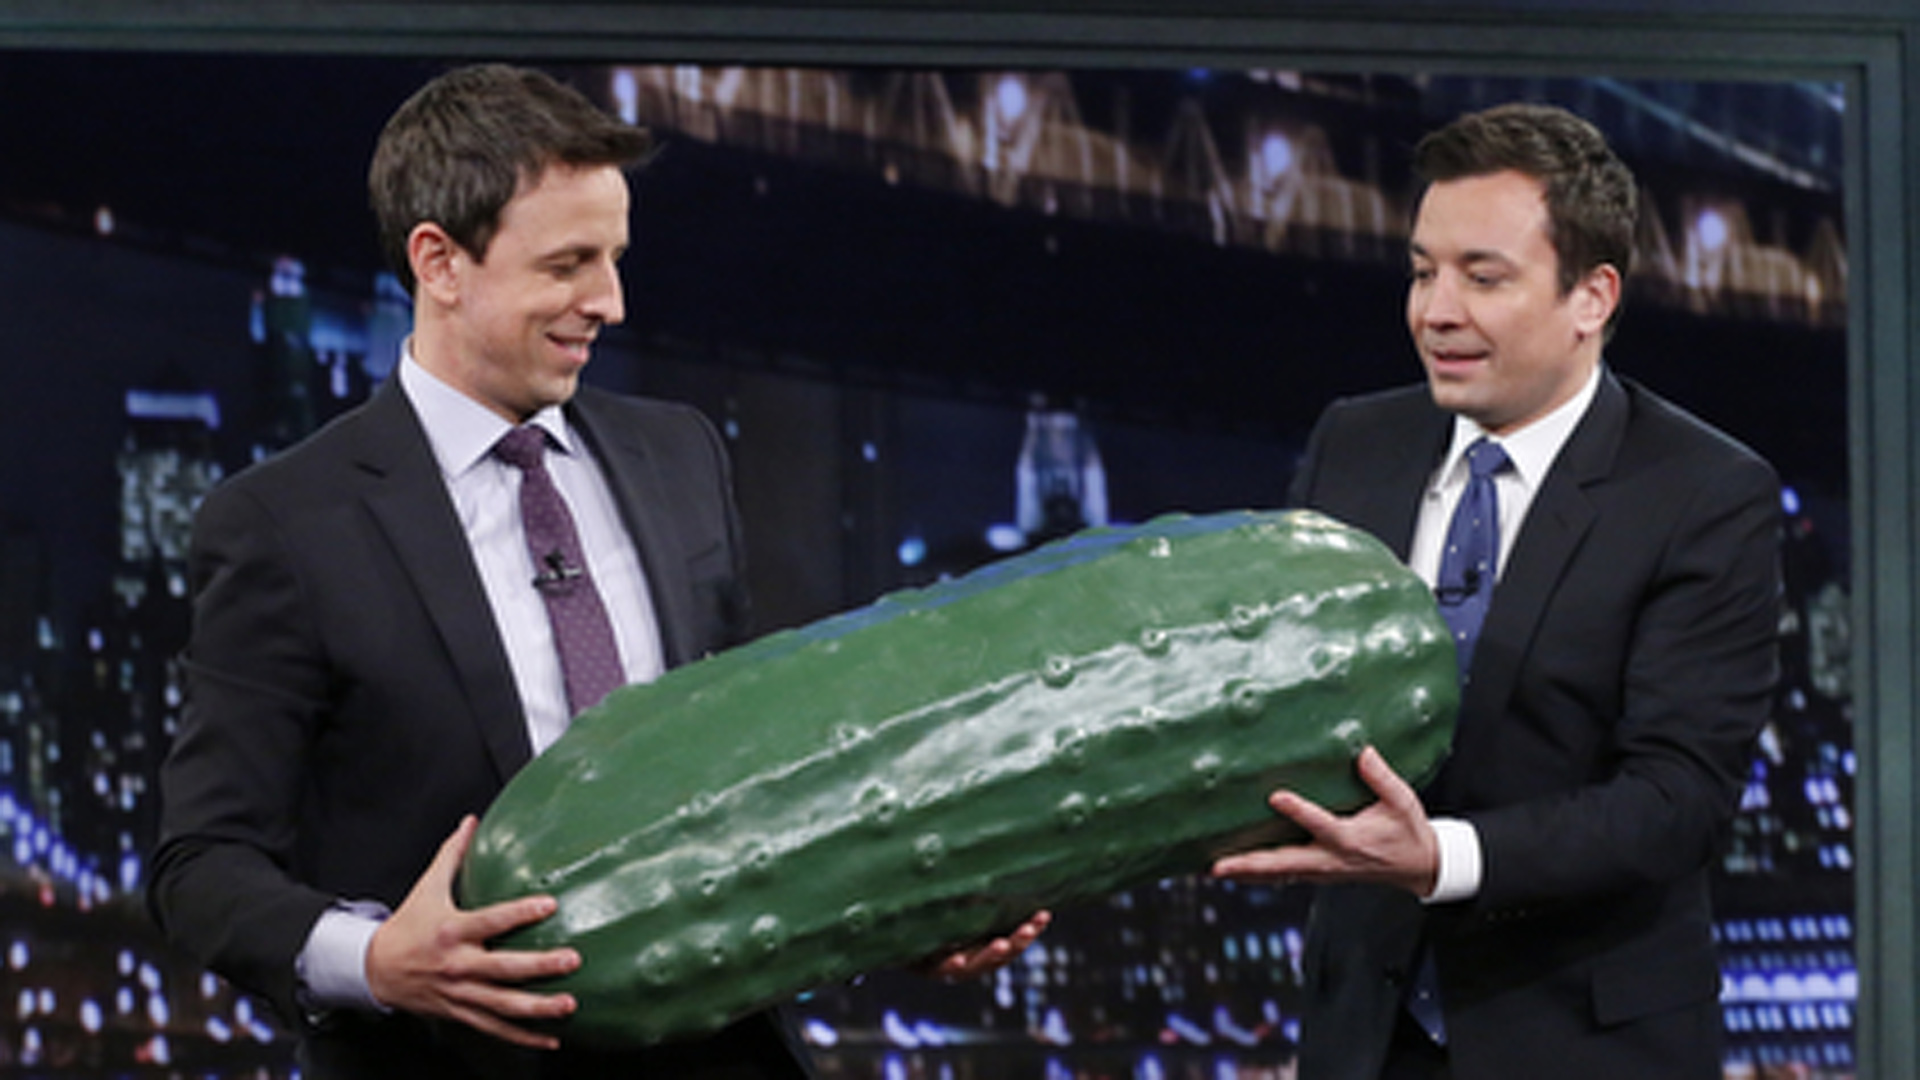 Jimmy Fallon inducted Seth Meyers into the